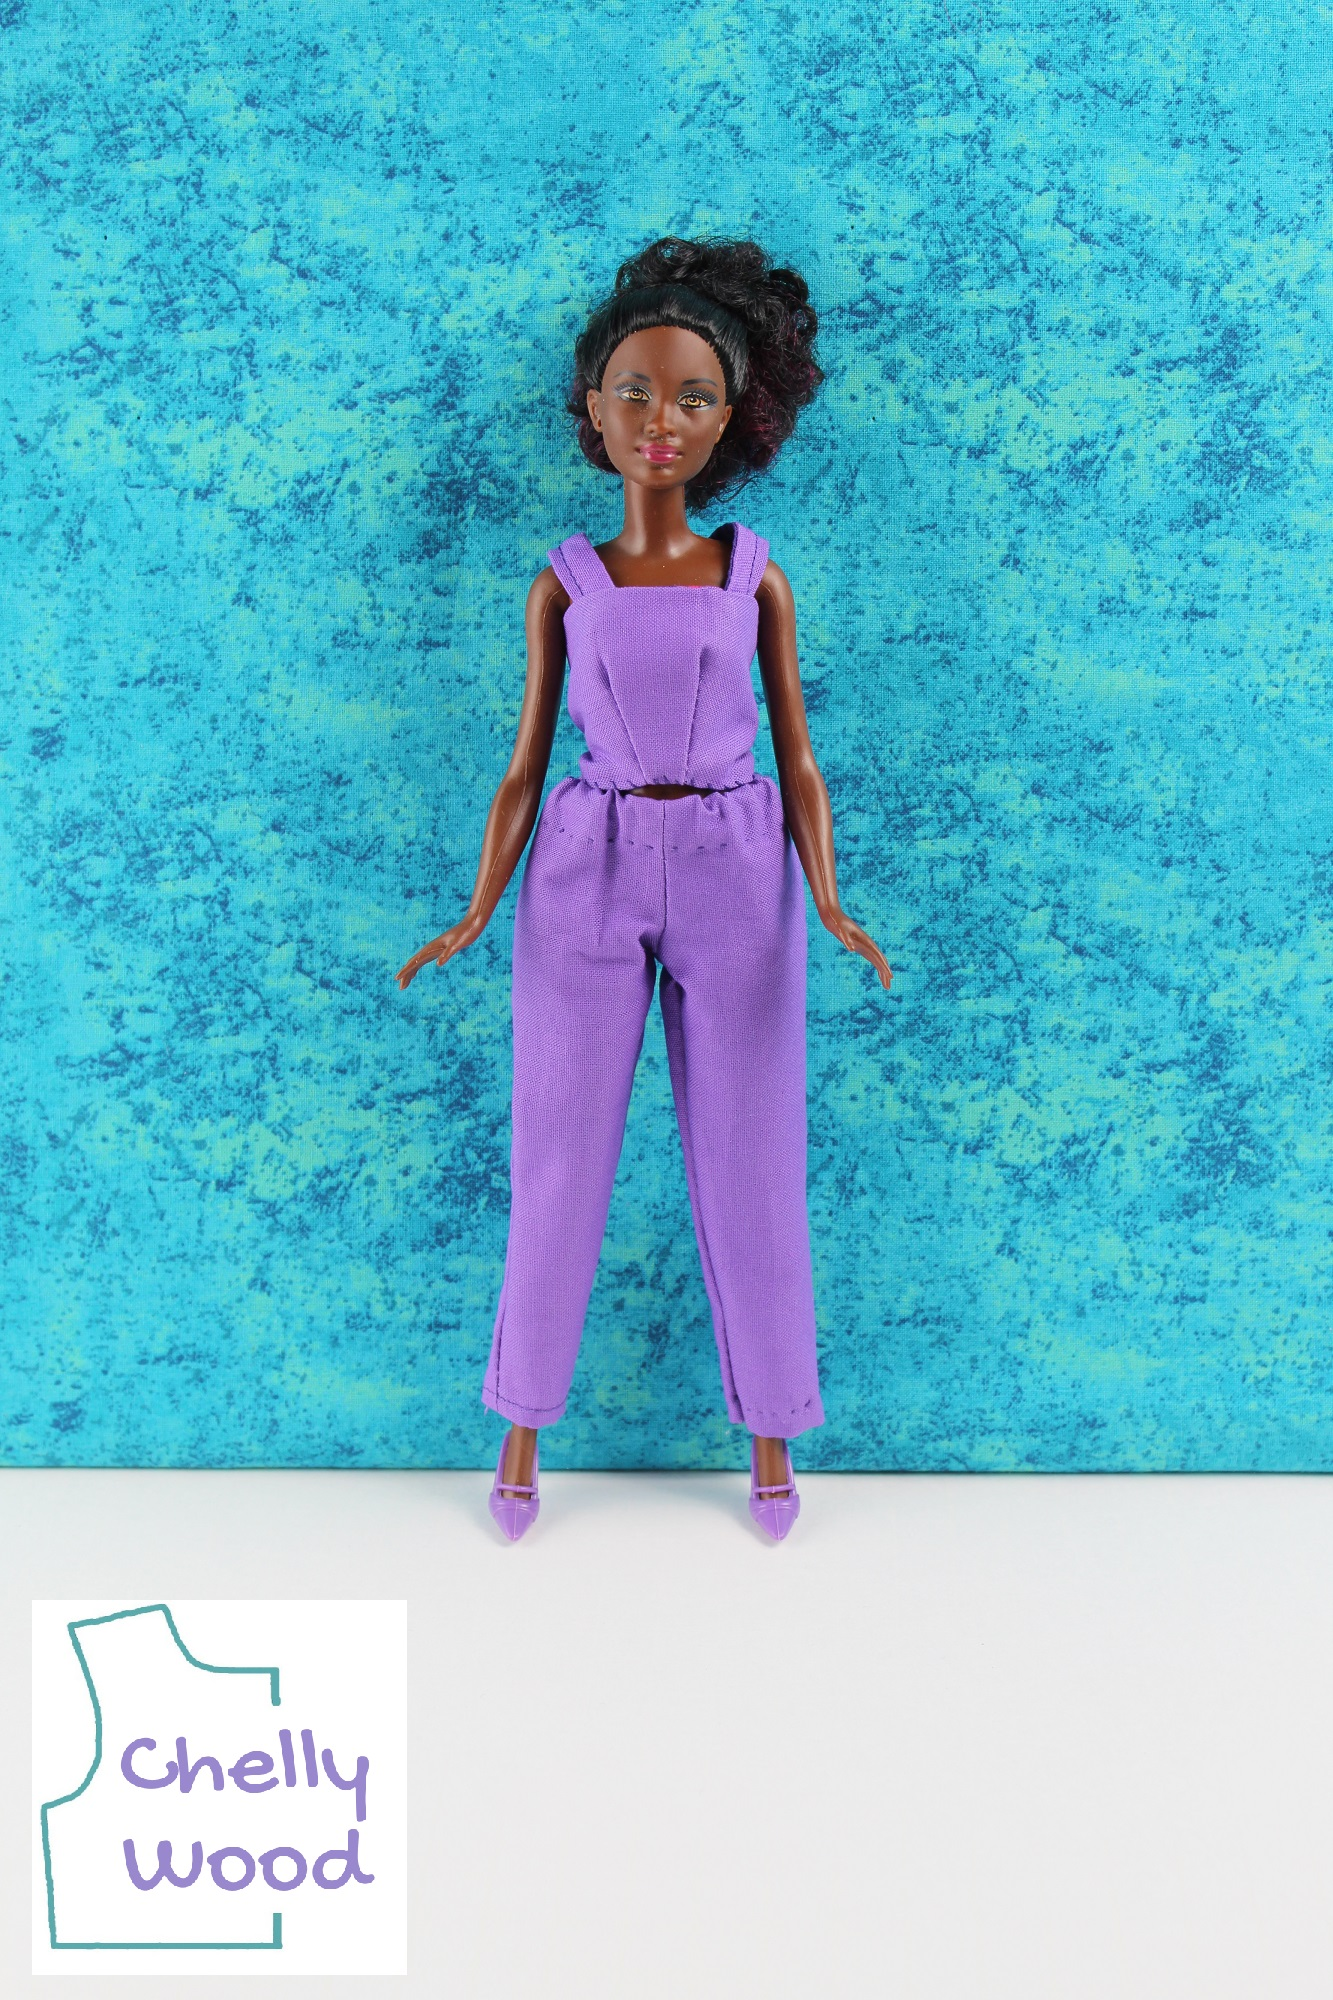 A lovely African or African American Barbie with light brown eyes and a chocolate complexion stands before a turquoise blue watery colored swatch of fabric. Her purple clothes sharply contrast against the background turquoise blue color. She stands in high heel purple plastic shoes with her feet spread slightly apart. She wears a medium purple cotton pair of elastic waist ankle pants and a matching purple cotton tank top with cotton straps. The tank top has darts. The watermark reminds us that you can find free printable PDF sewing patterns for making these Petite Barbie doll clothes at ChellyWood.com